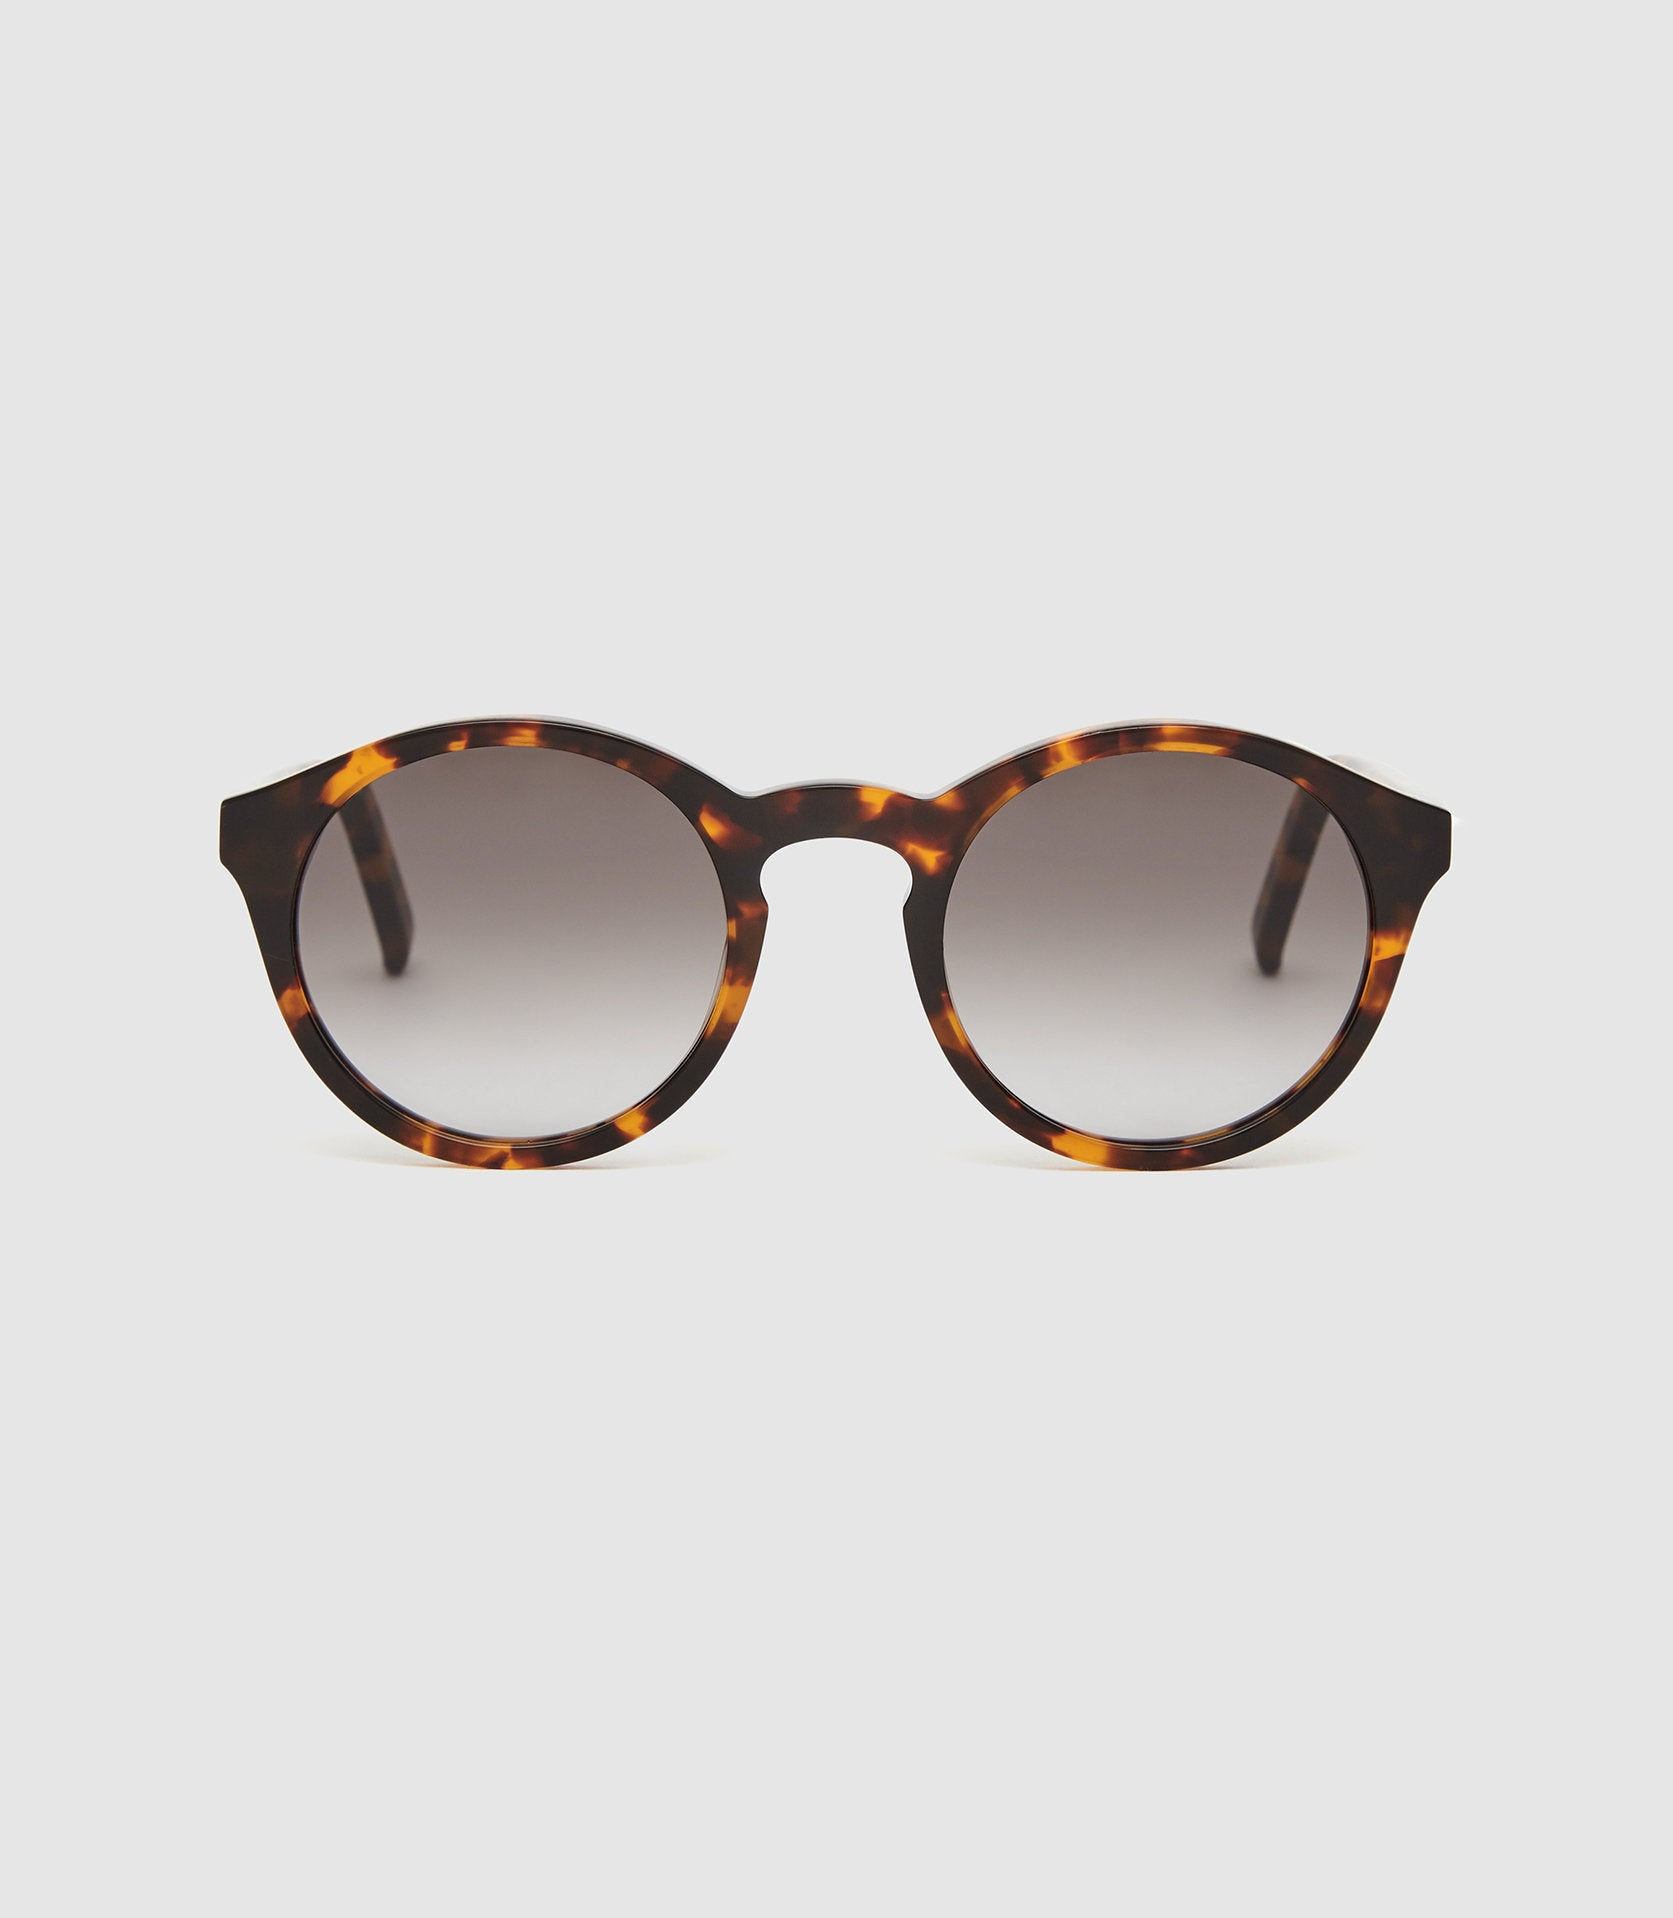 Barstow sunglasses at Reiss - £90 - Cause it ain't really summer until you have a great pair of shades